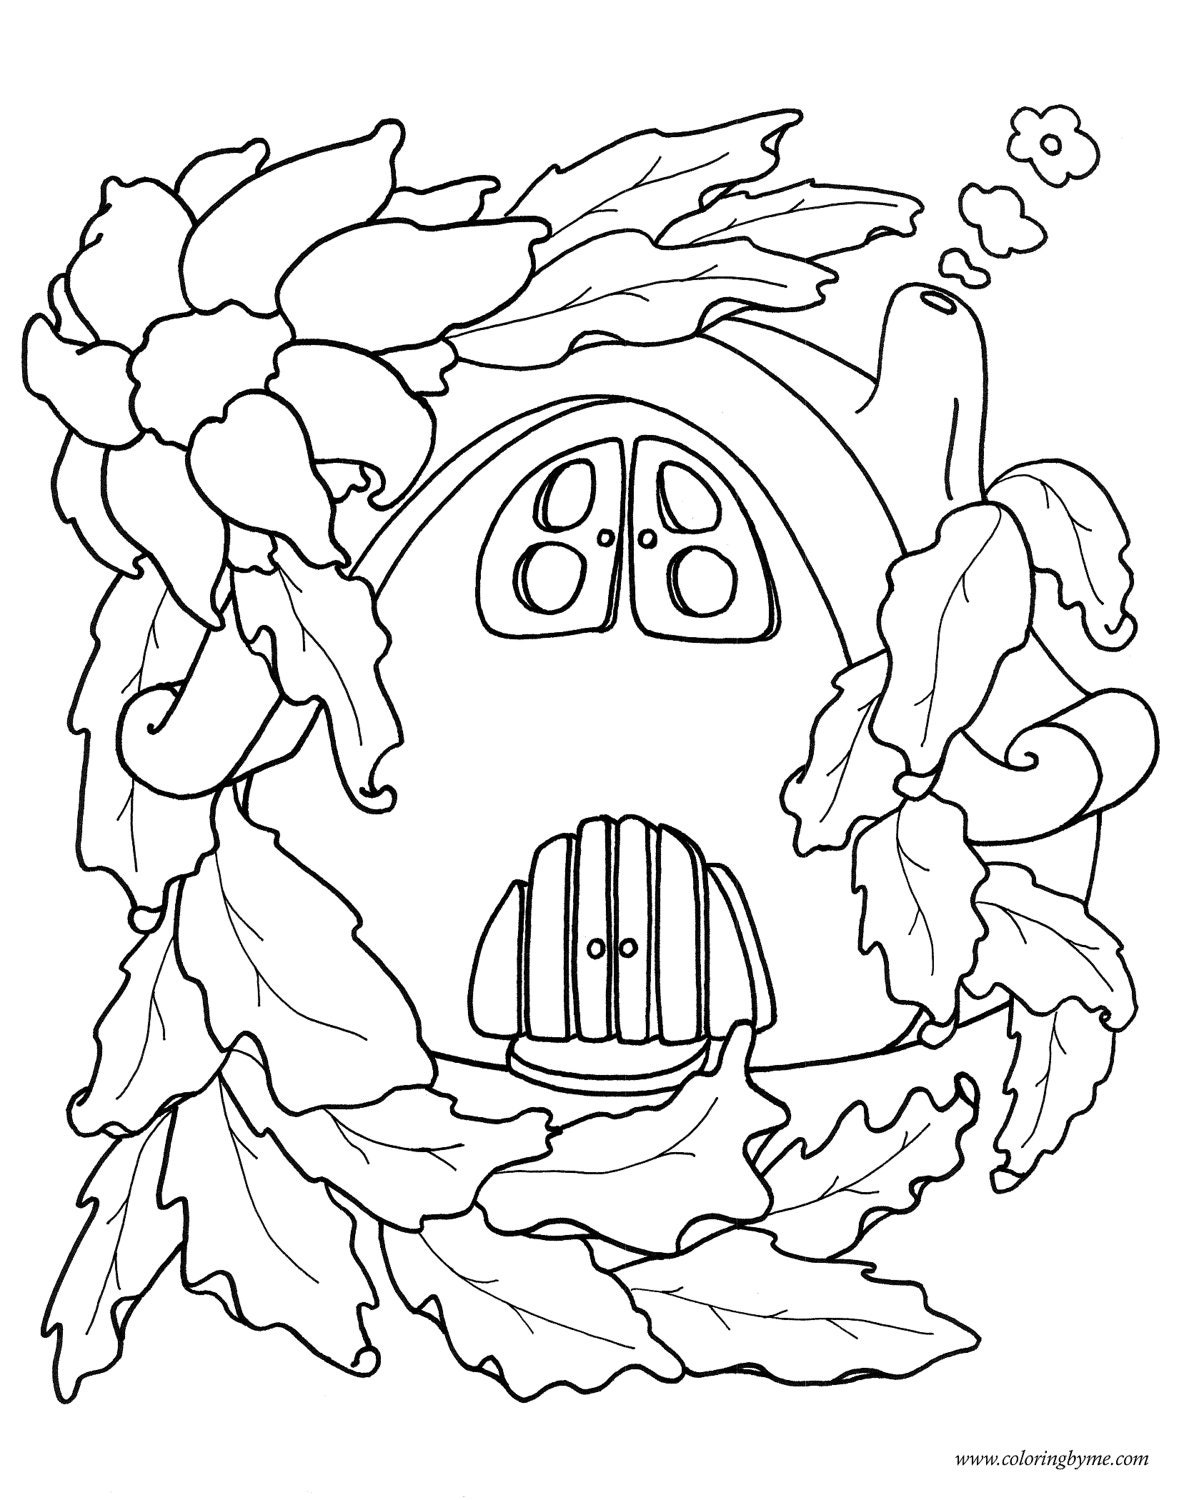 Coloring pages coloring and fairy houses on pinterest for Fairy house coloring pages